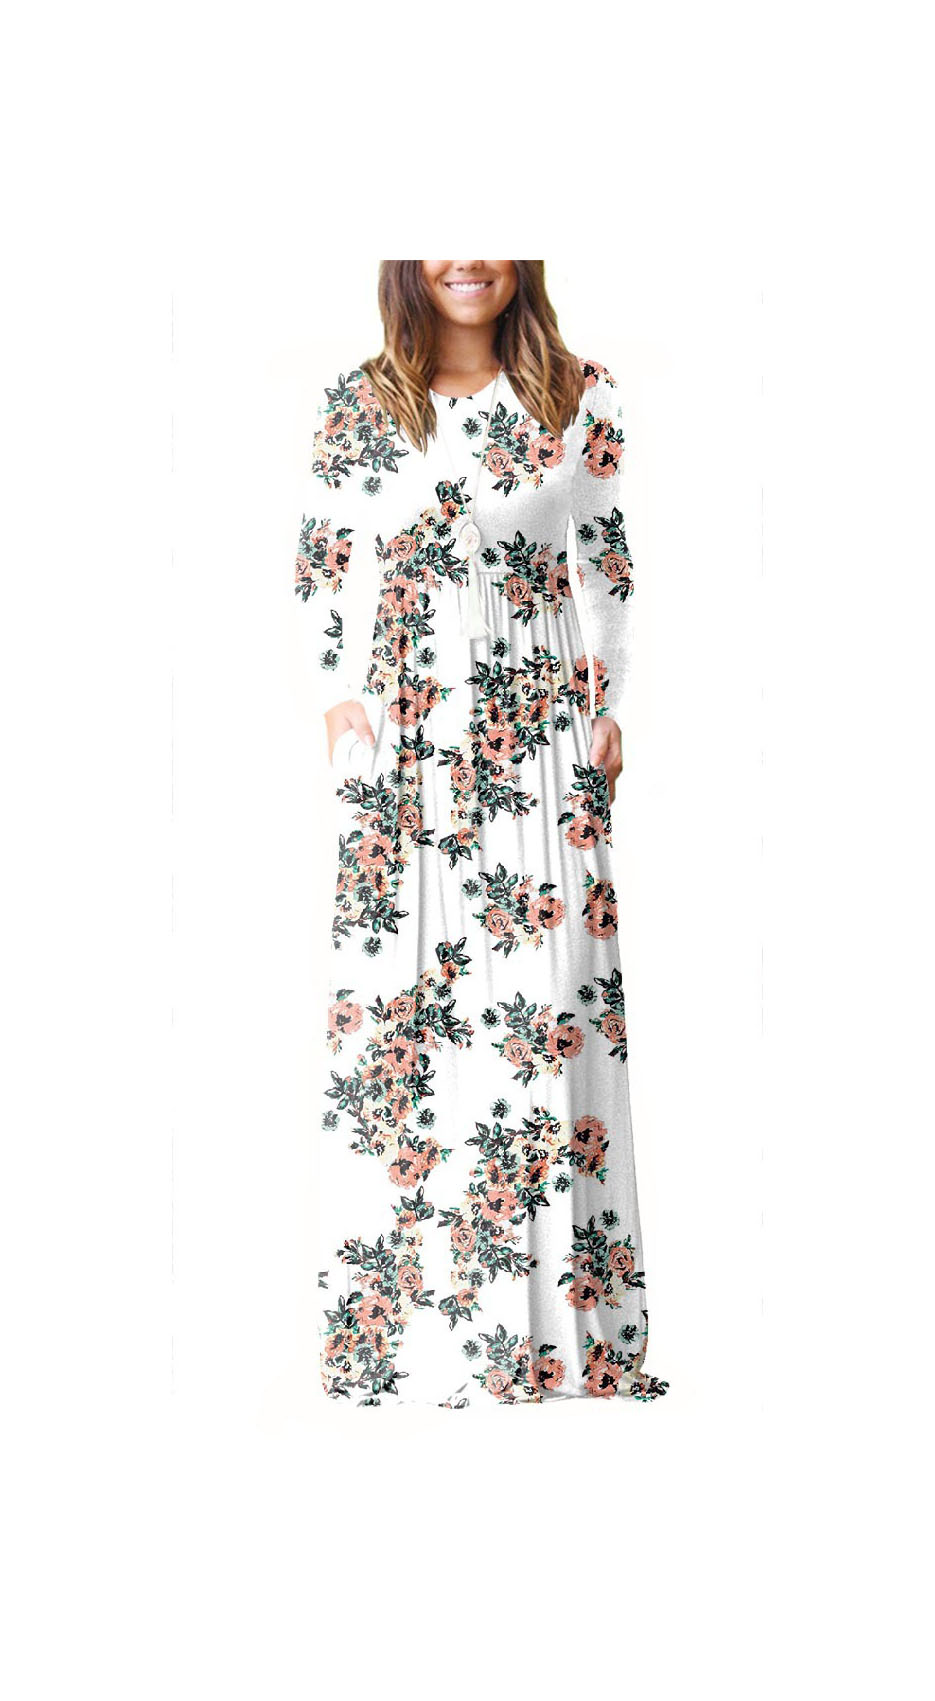 8f702b5acf Women Floral Print Maxi Dress Long Sleeve Pockets Beach Boho Long Casual Party  Dress off white